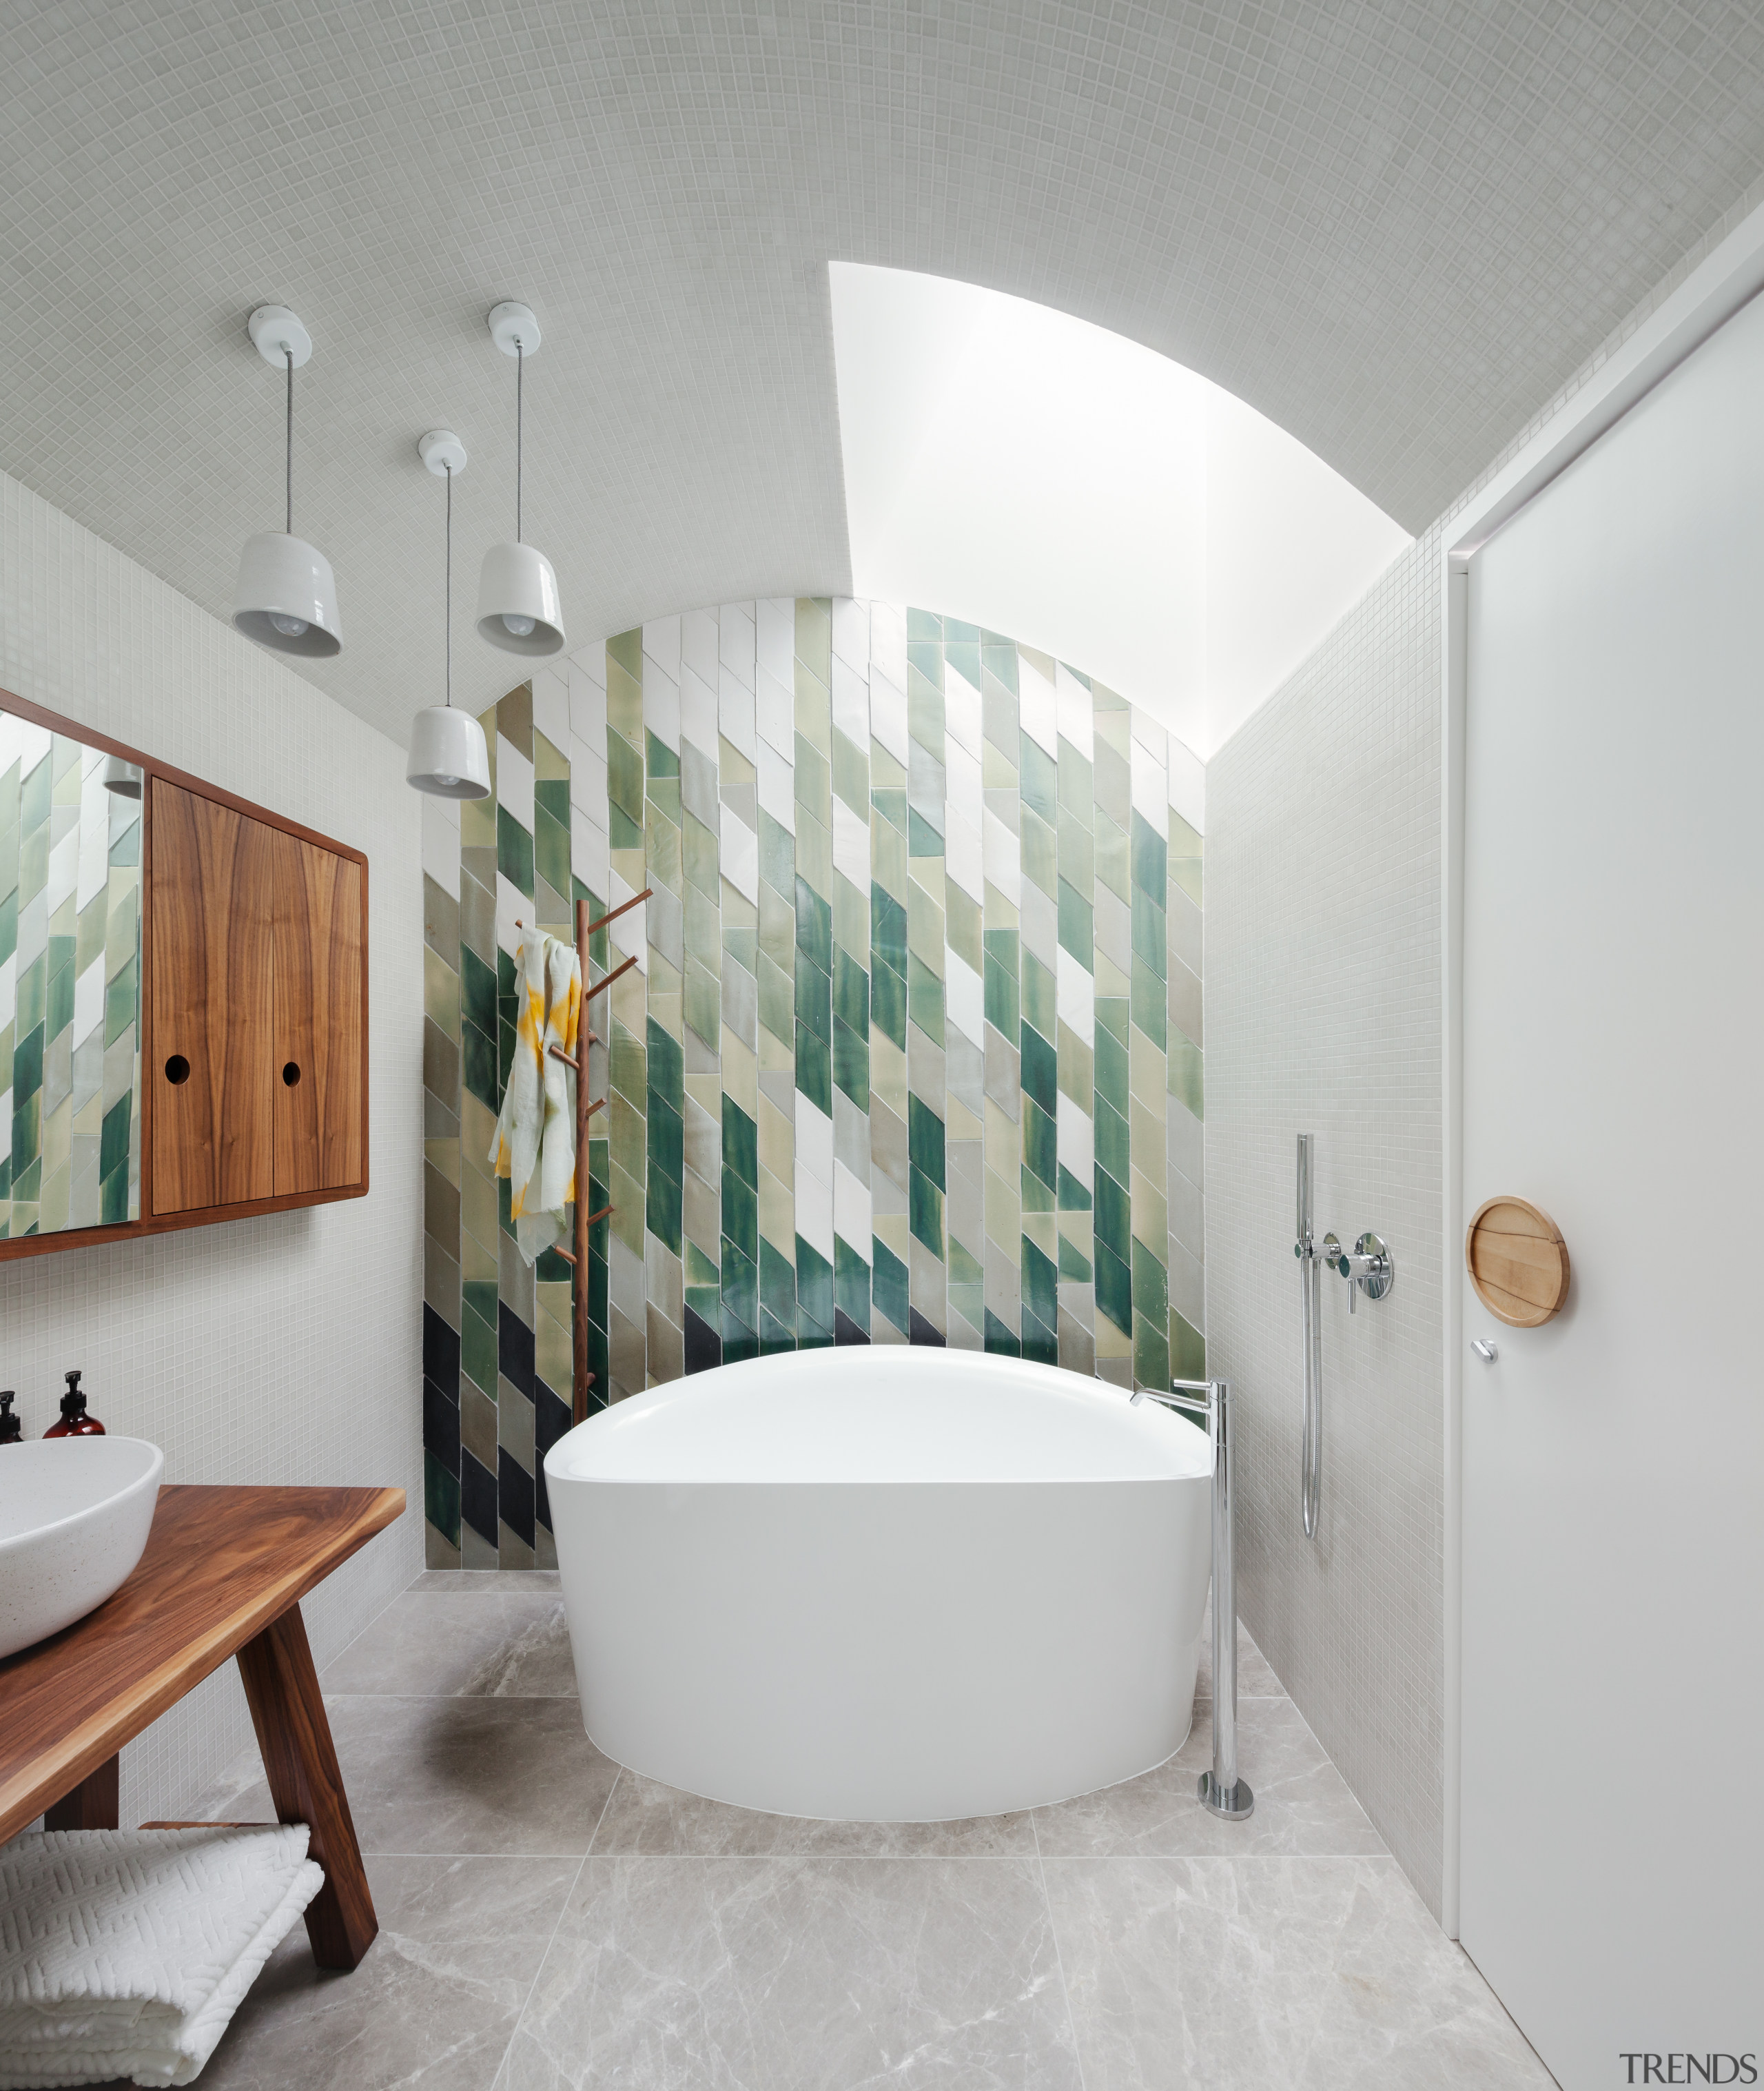 Day Bukh Architects – Highly Commended – TIDA architecture, bathroom, ceiling, floor, interior design, plumbing fixture, room, tap, tile, wall, gray